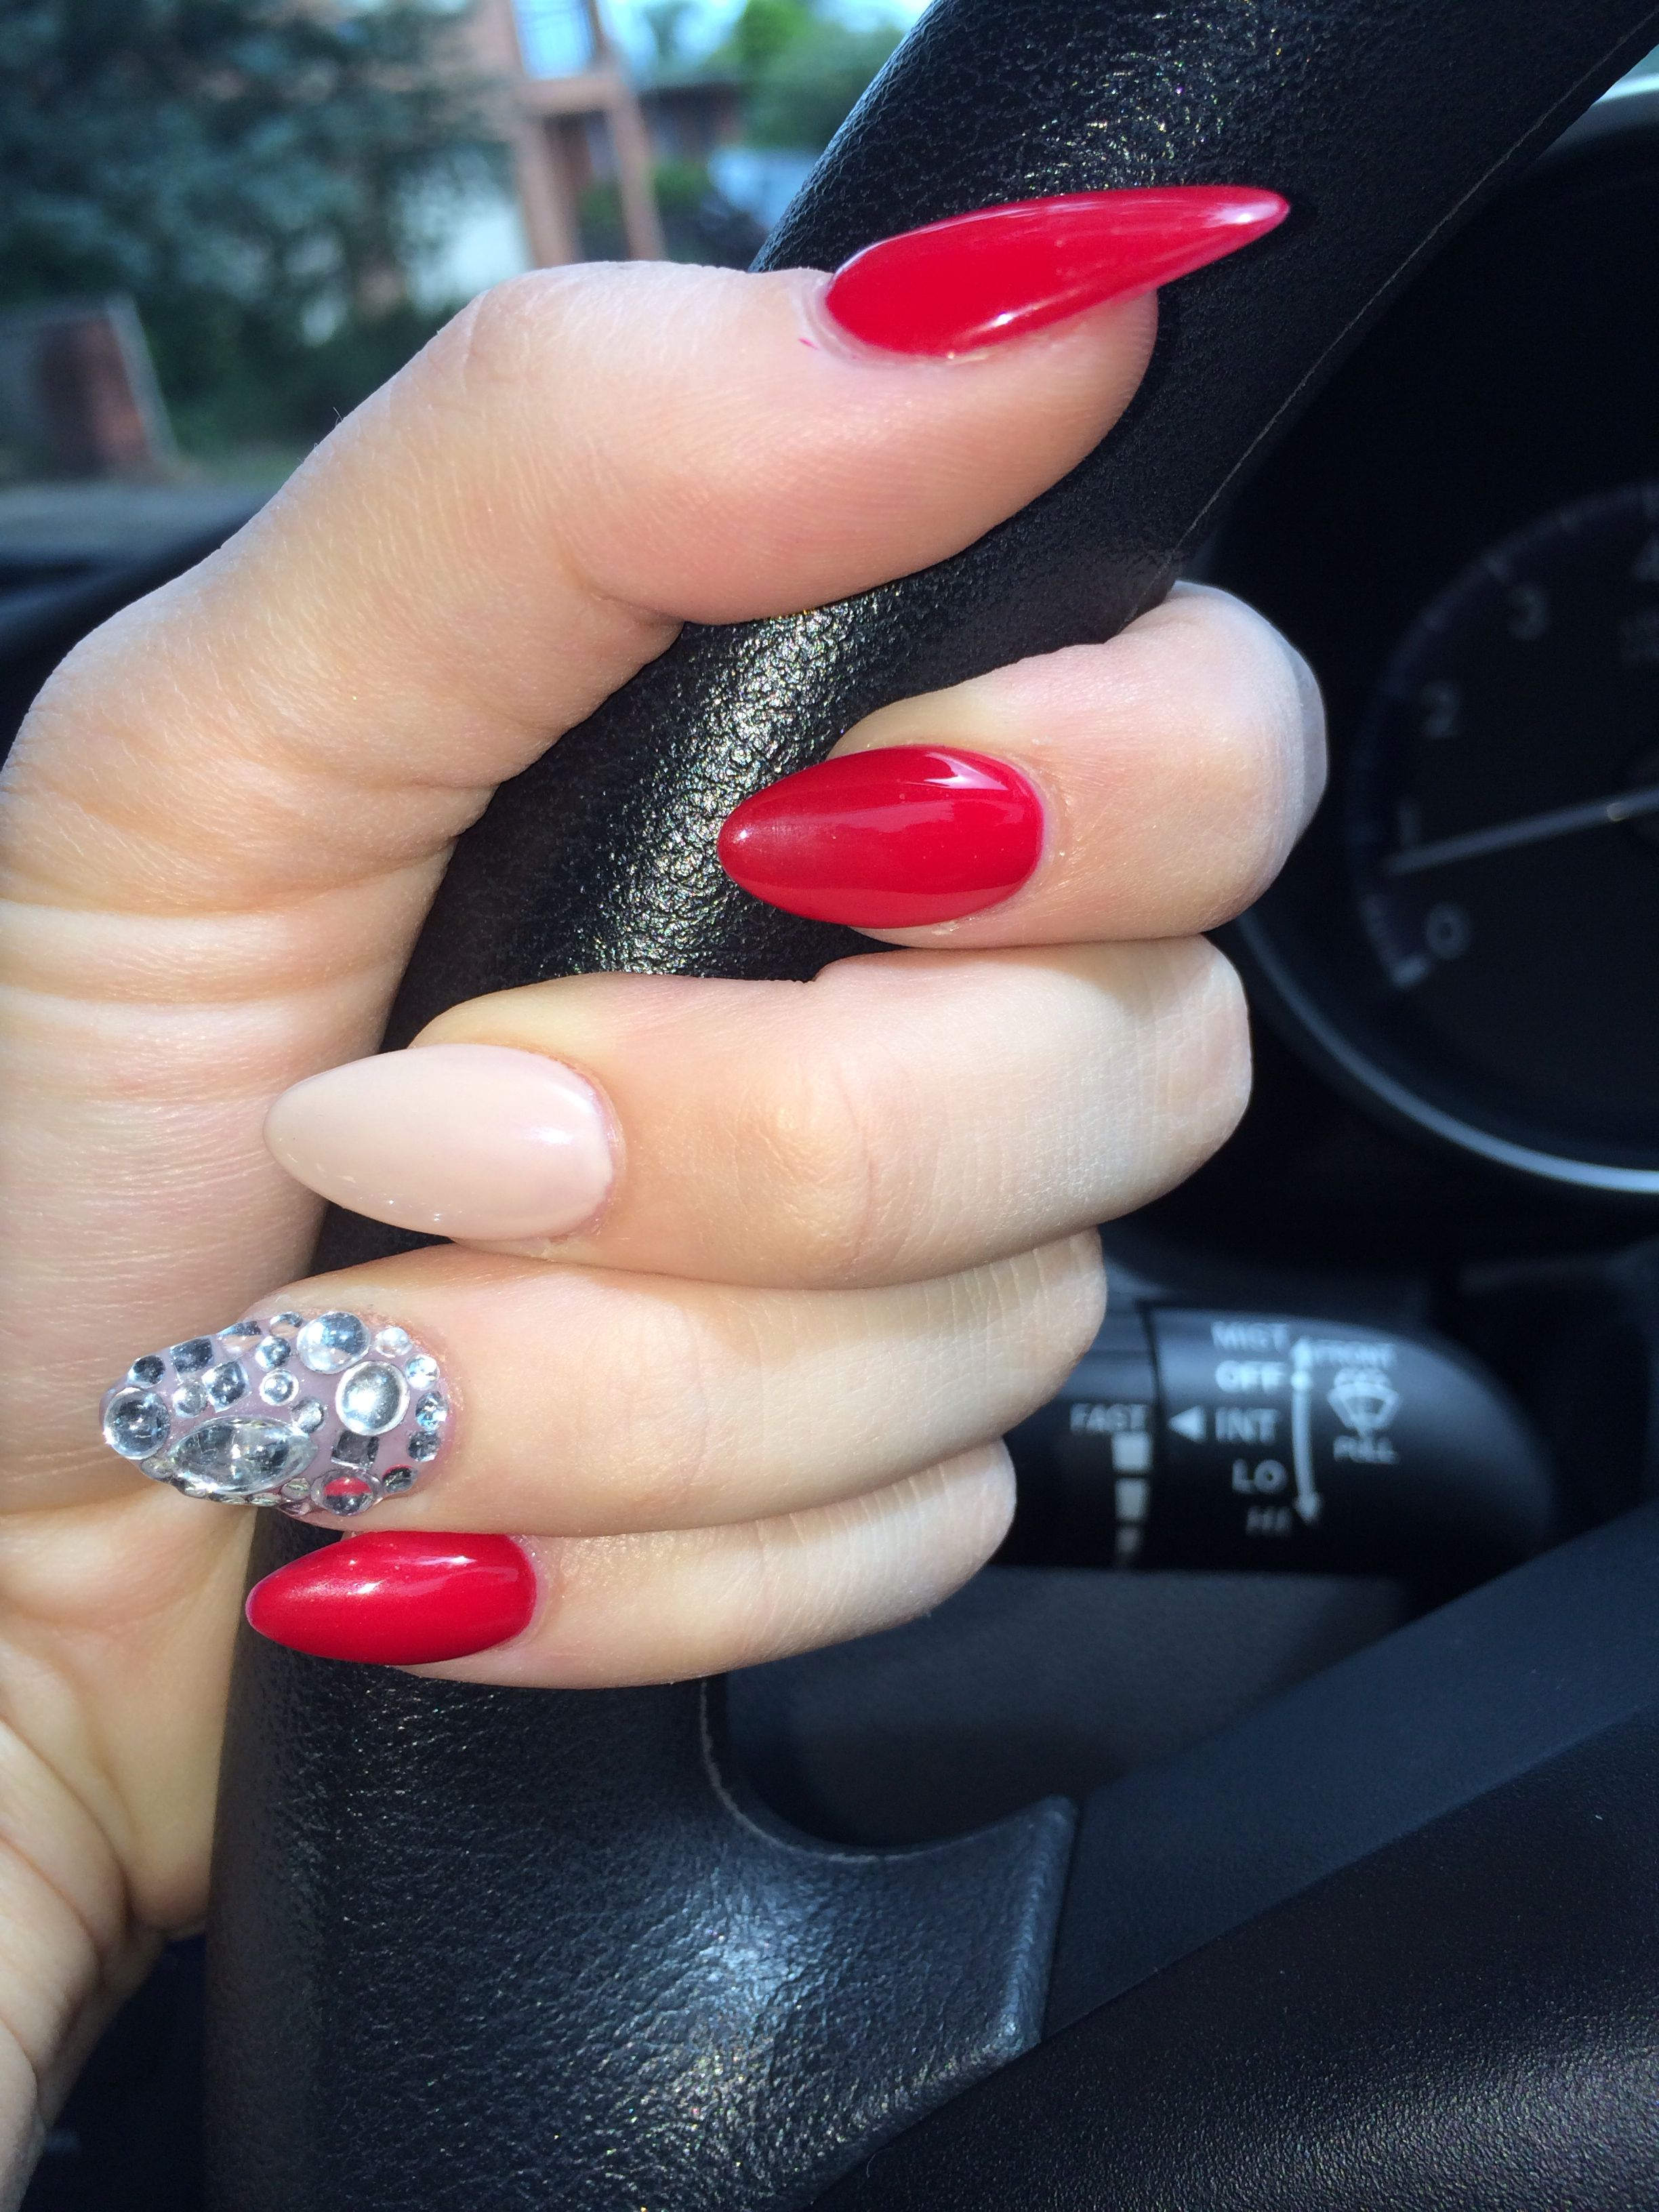 Stilleto nails! The red is stunning and the diamonds finish the look perfectly love it :**